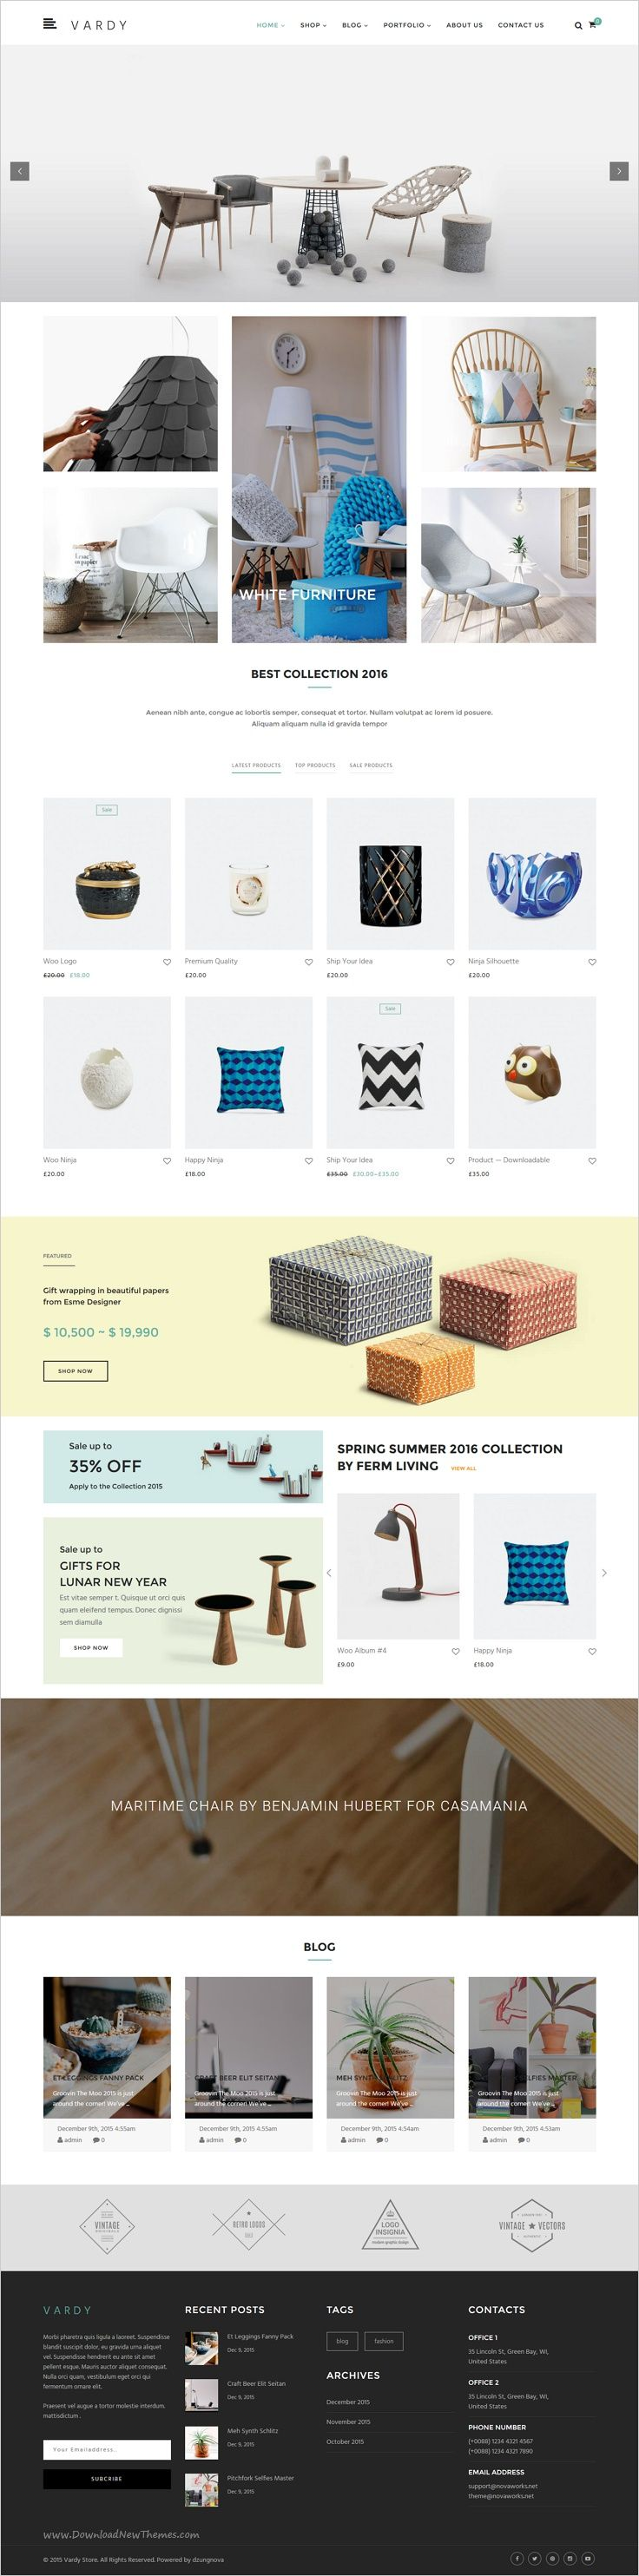 Vardy is a creative responsive #WordPress template for #decor #furniture shop eCommerce website with 4 multipurpose homepage layouts download now➯ https://themeforest.net/item/vardy-creative-and-ecommerce-wordpress-template/16702834?ref=Datasata